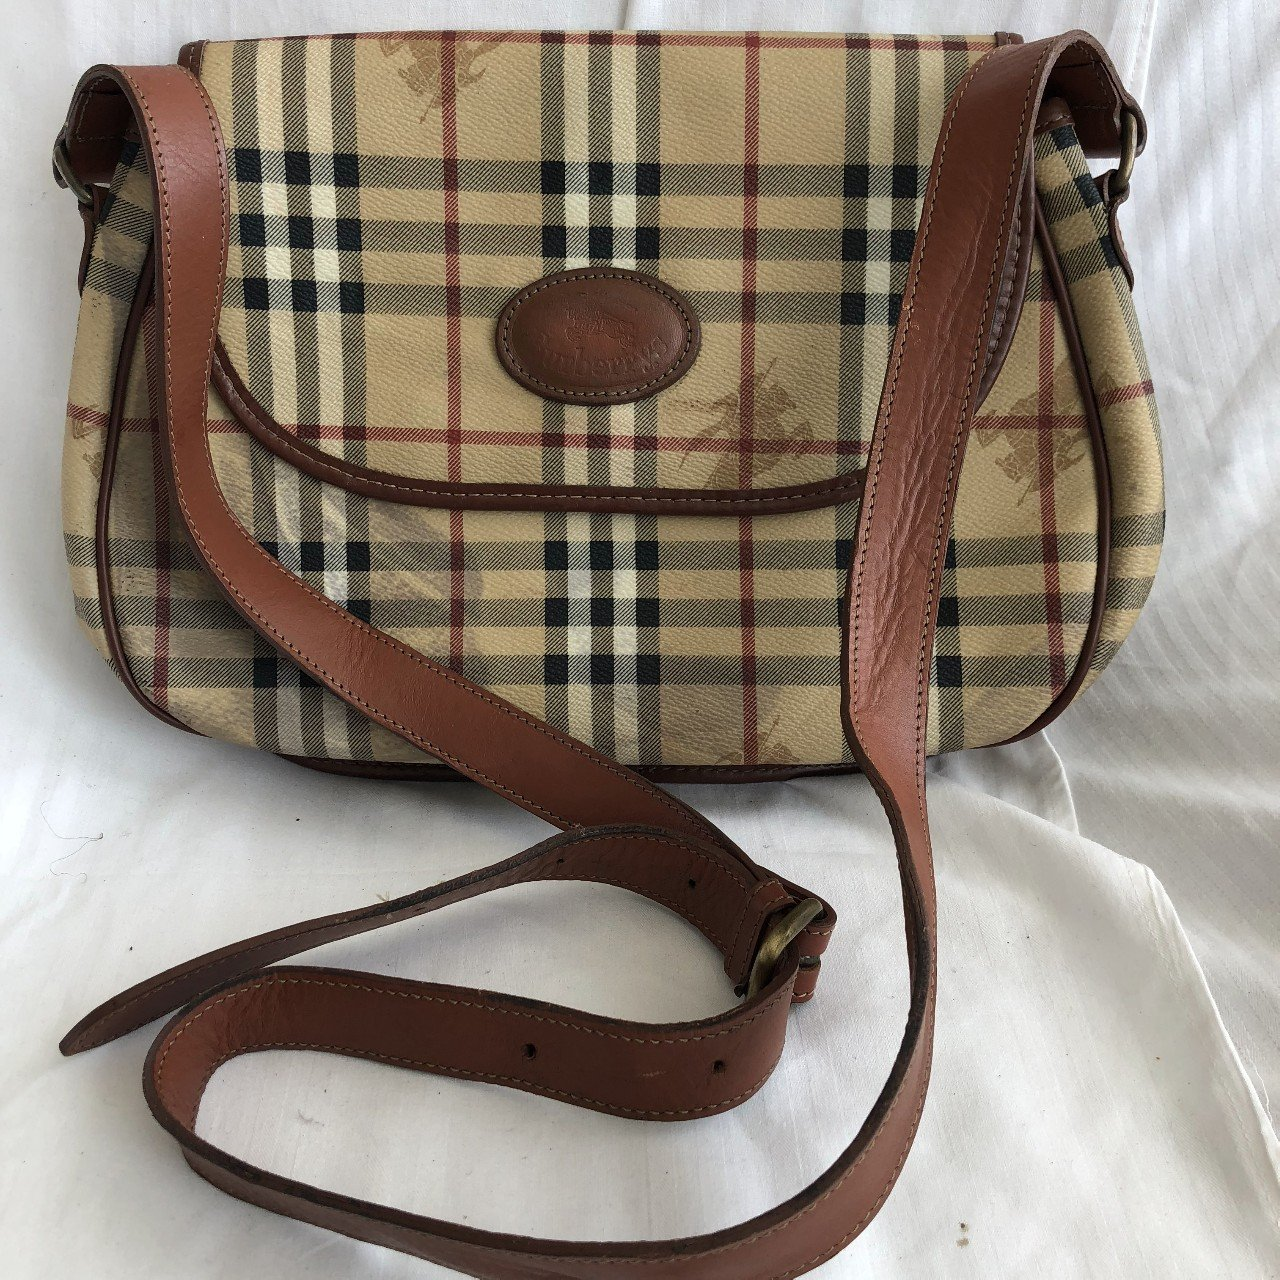 Burberry Vintage Canvas Crossbody Bag with Leather Handles - Depop 323bfcec4657f